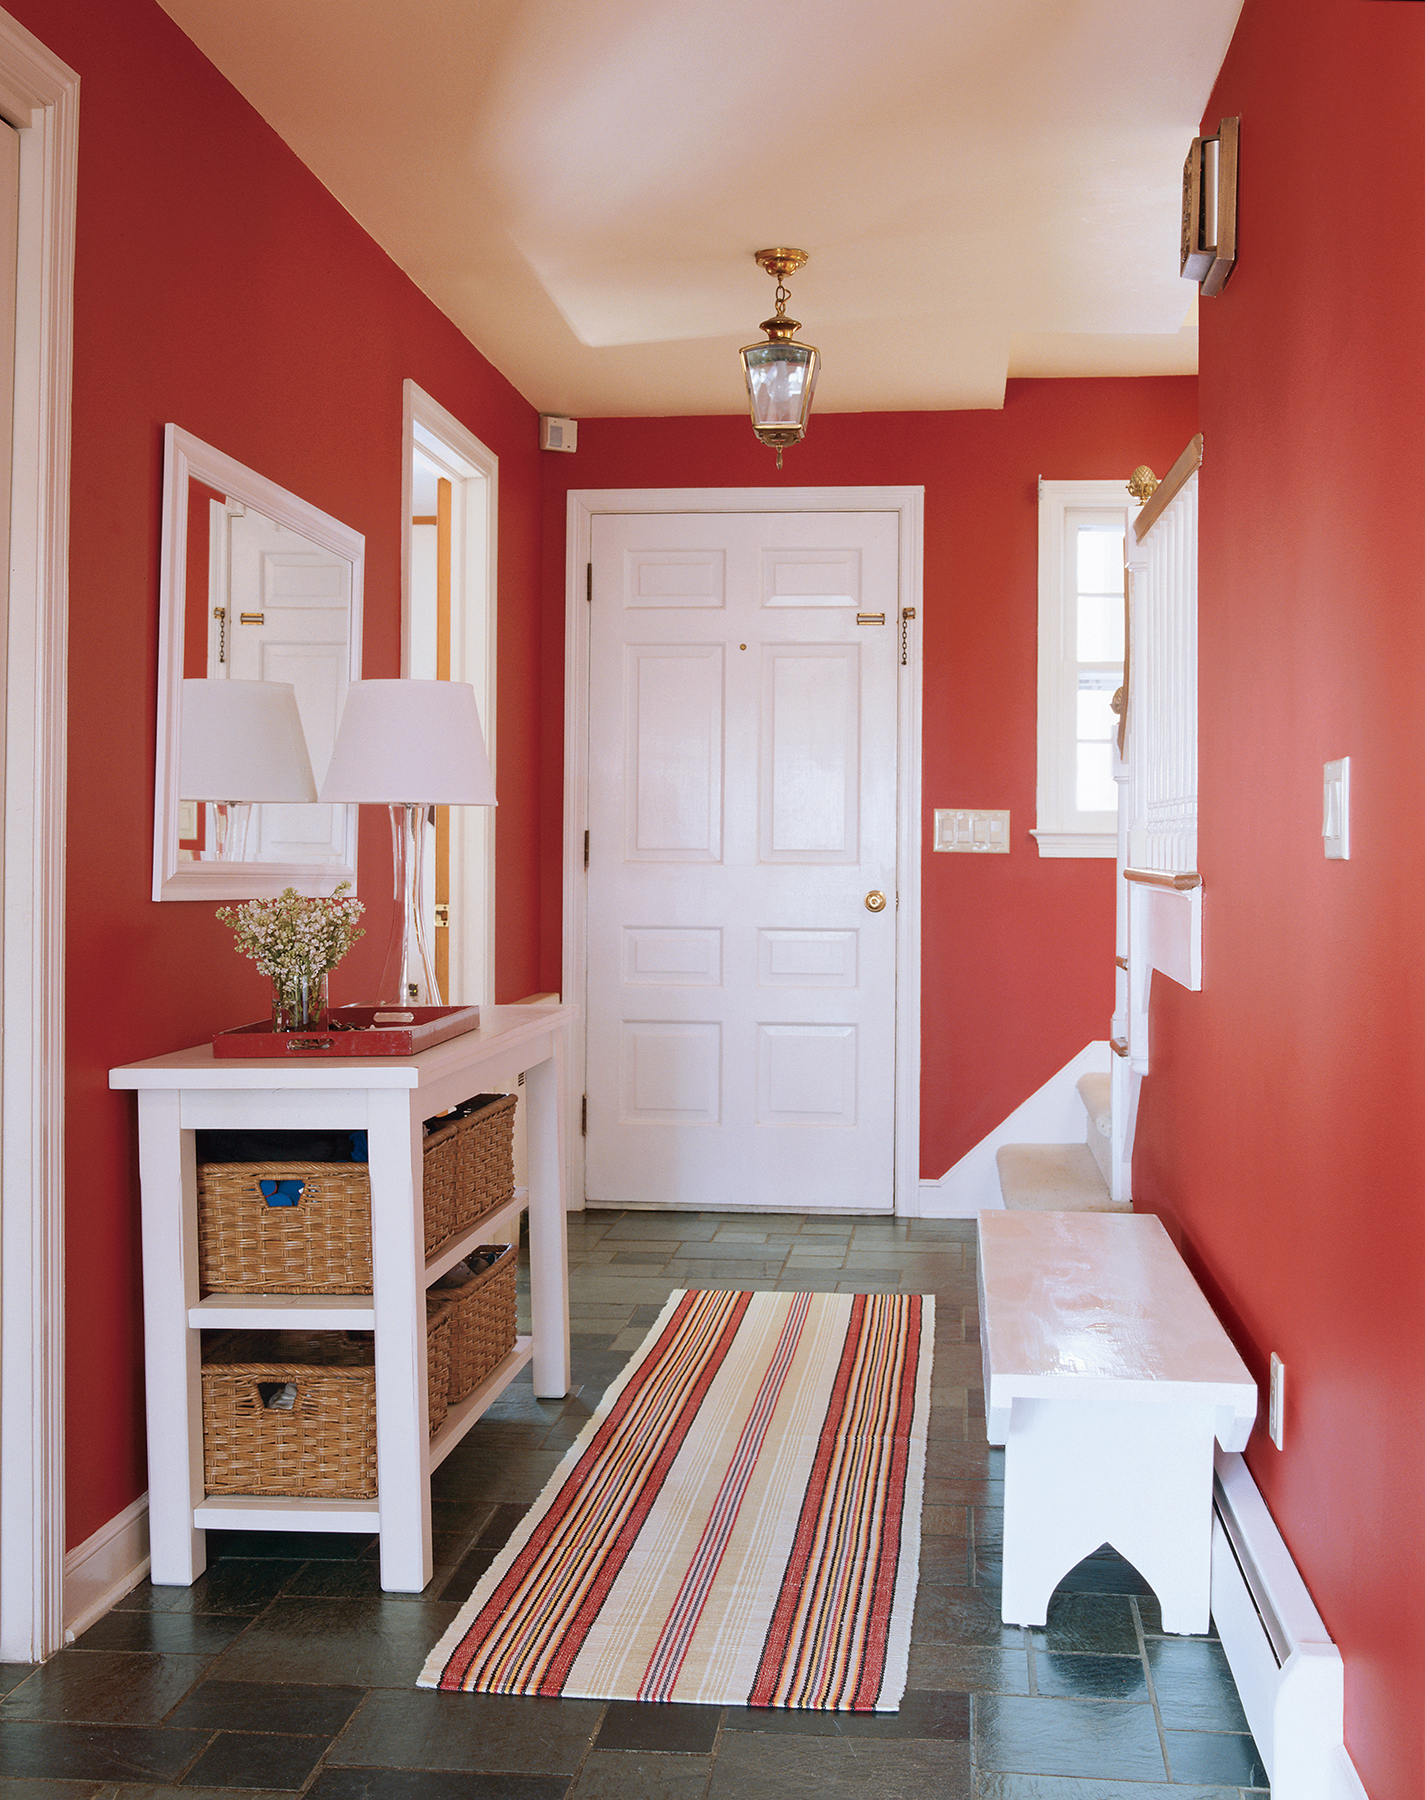 40 Entryway Decor Ideas To Try In Your House: 21 Ways To Enhance An Entryway